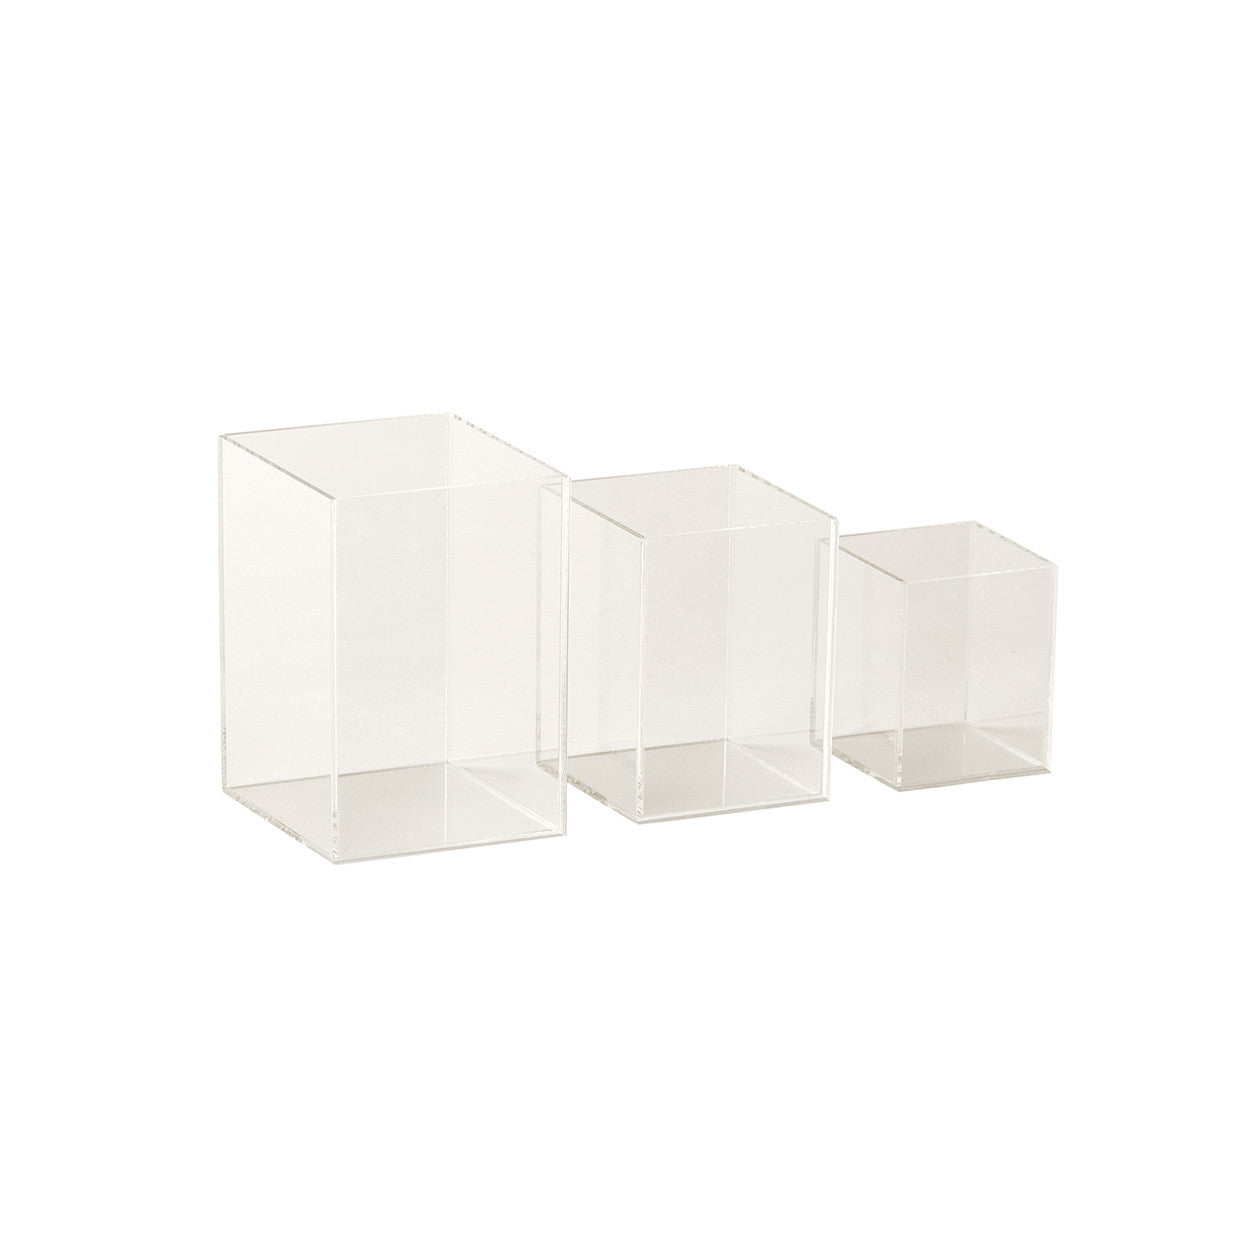 Acrylic Jewellery Plinth Set with 3 Nesting Pieces (M3560CA)